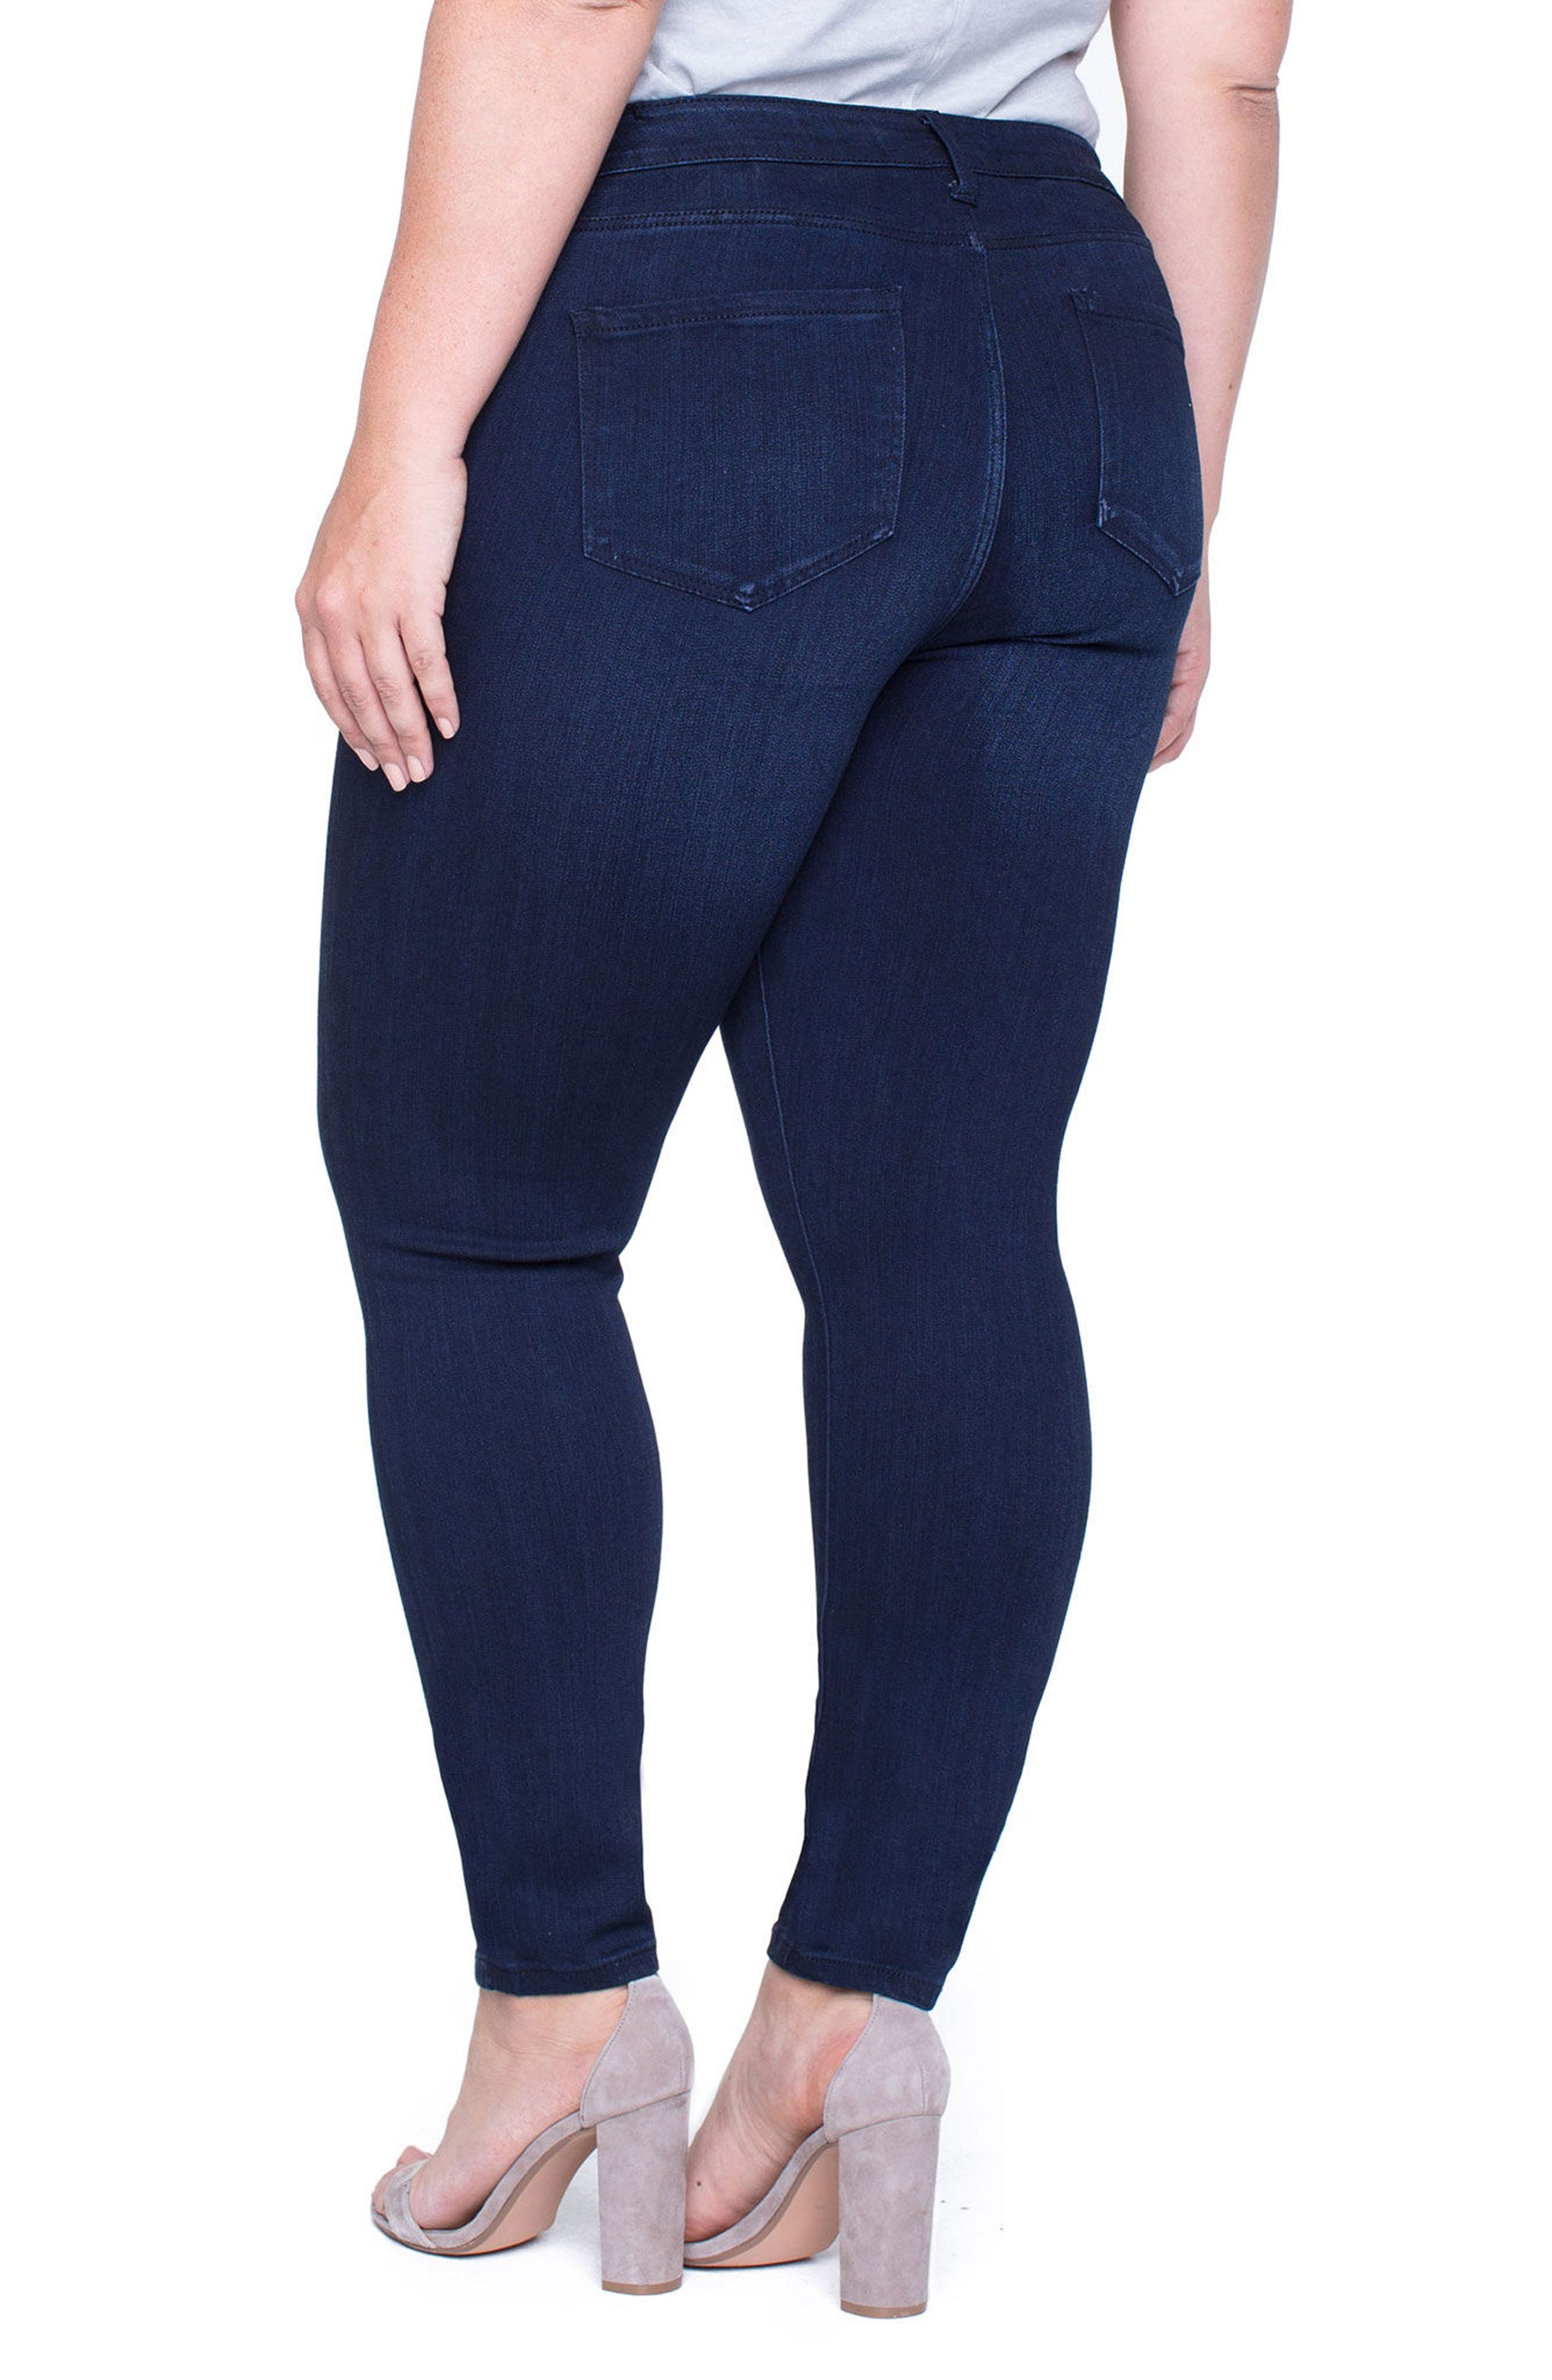 Abby Stretch Skinny Jeans,                             Alternate thumbnail 2, color,                             STONE WASH